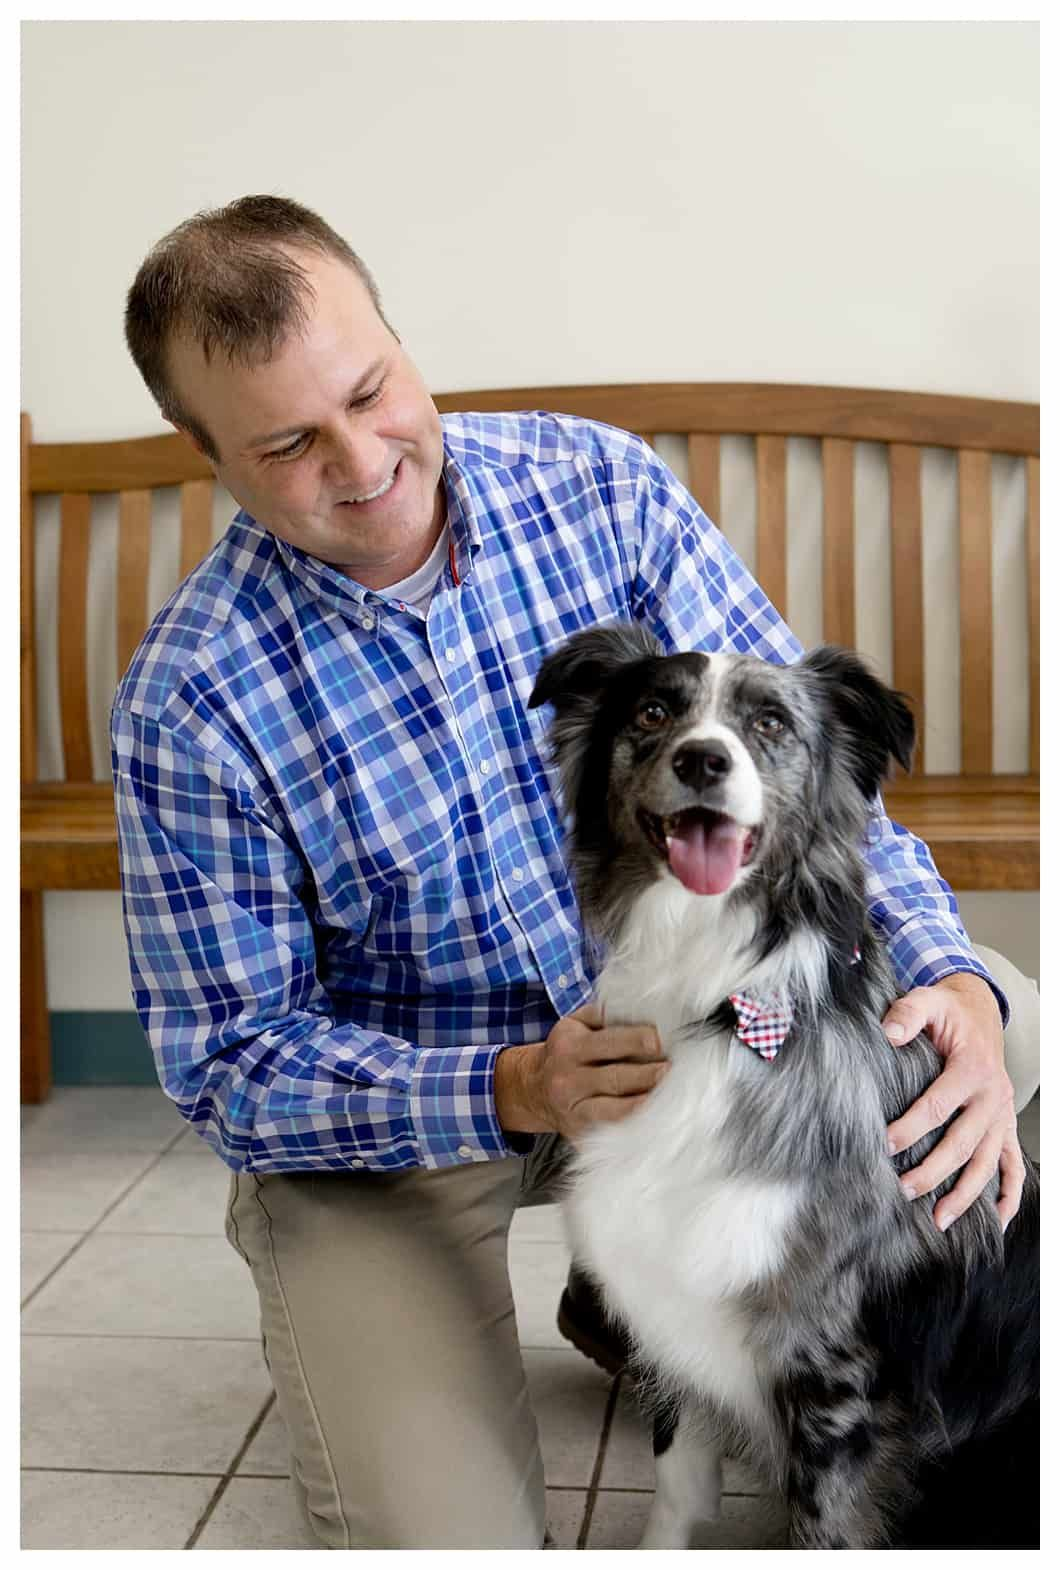 Animal Care Hospital Veterinary Clinic Work with animals